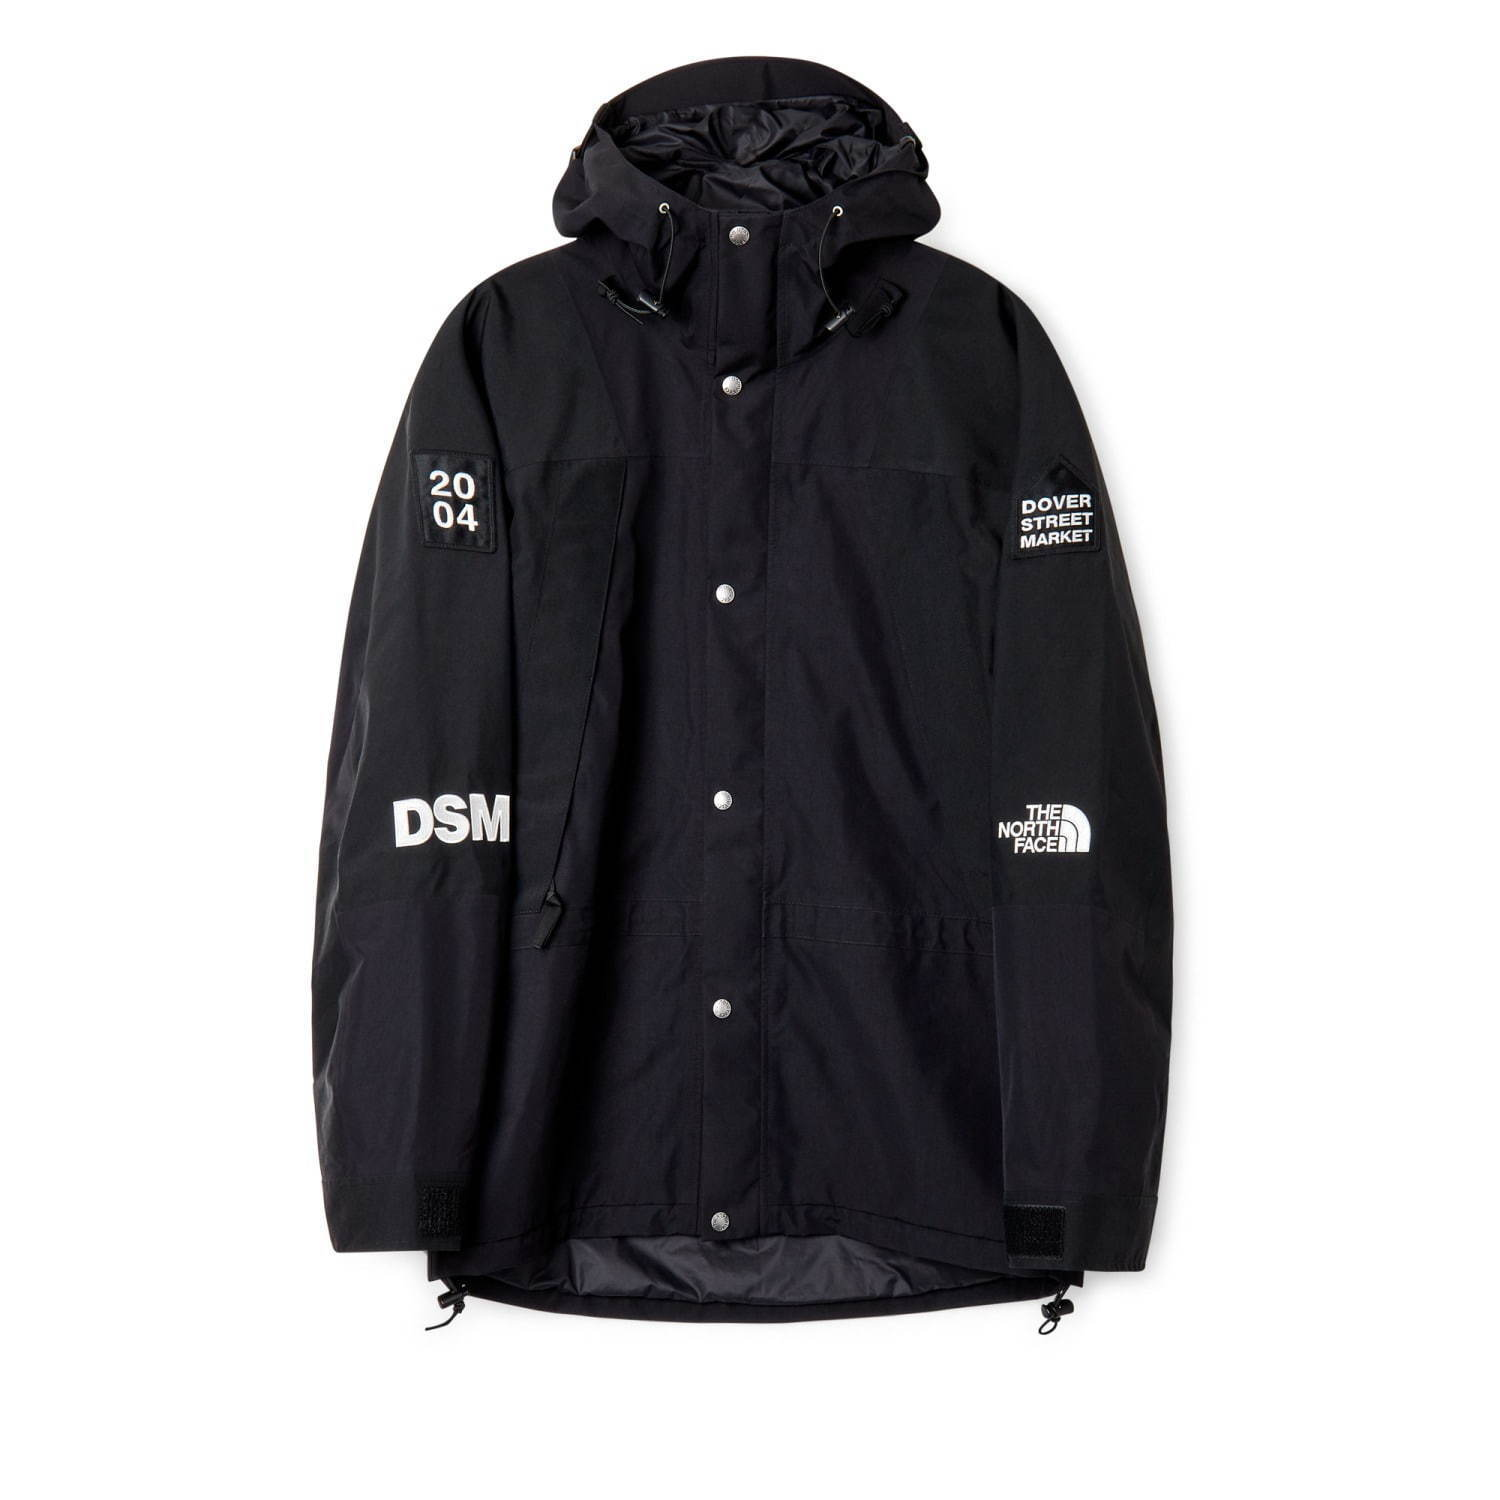 DSM × The North Face / Mountain Jacket (THE NORTH FACE/ジャケットその他) 50705574